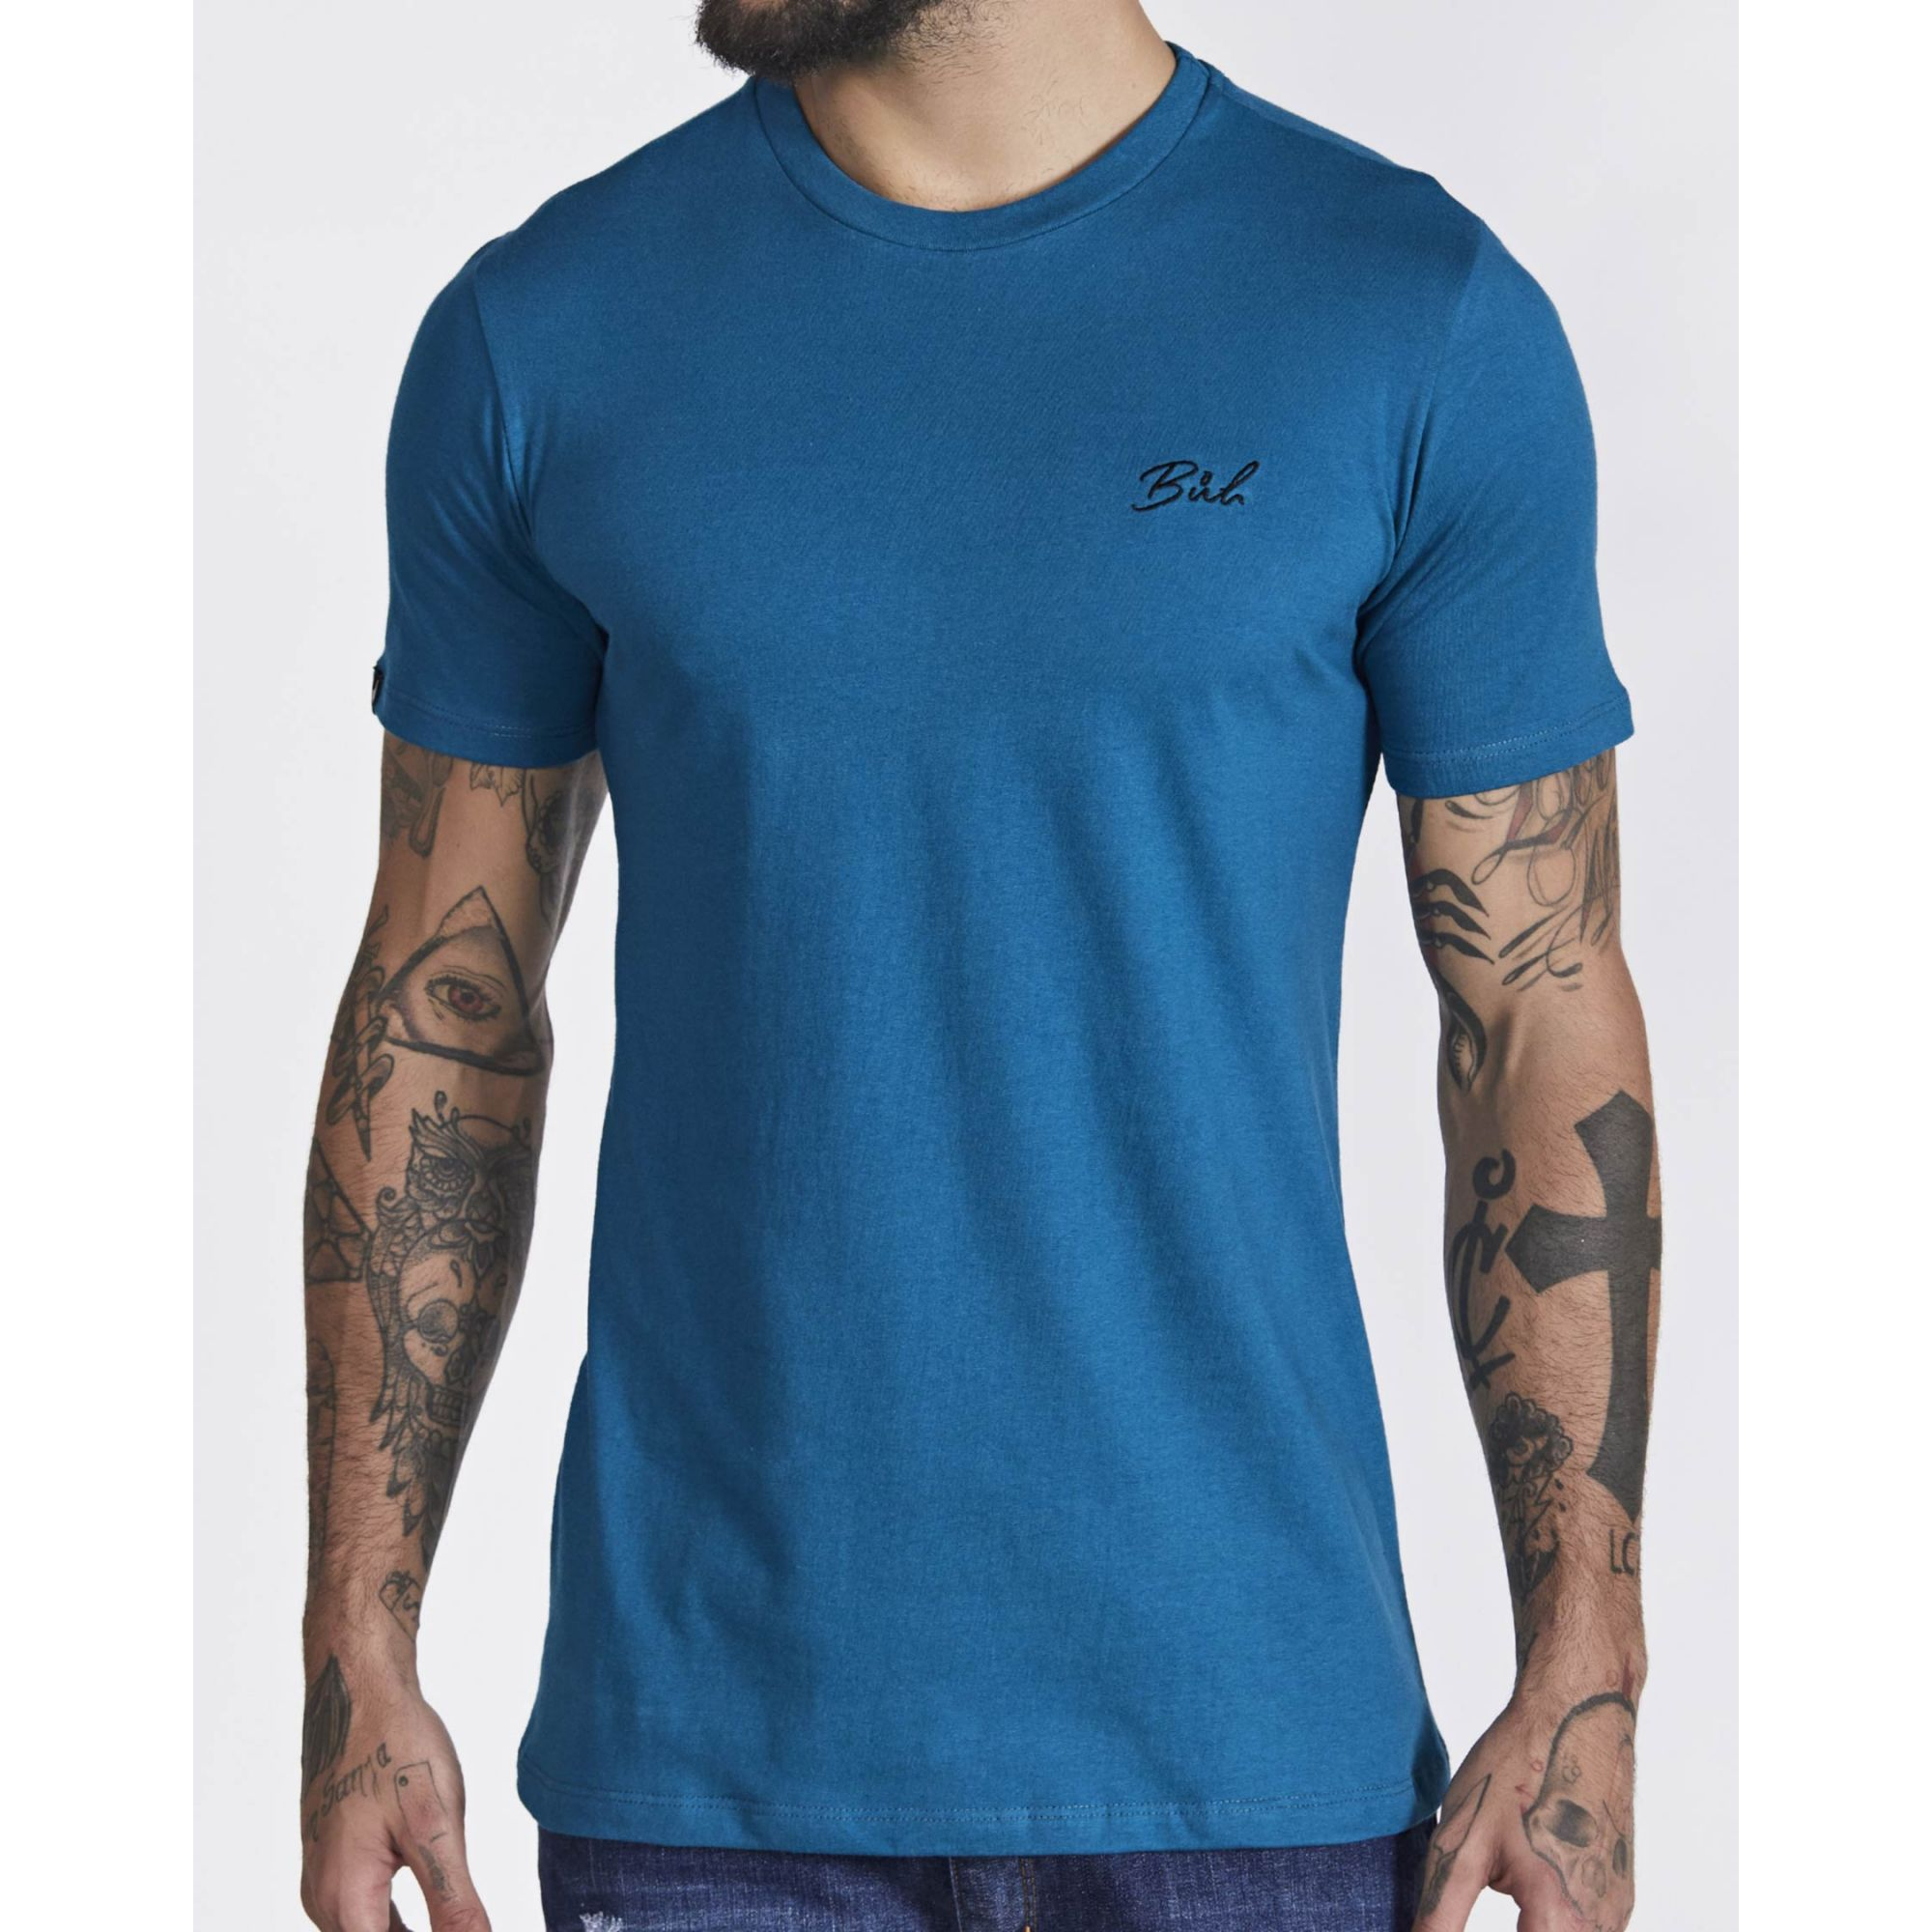 Camiseta Buh Basic Bordada Blue